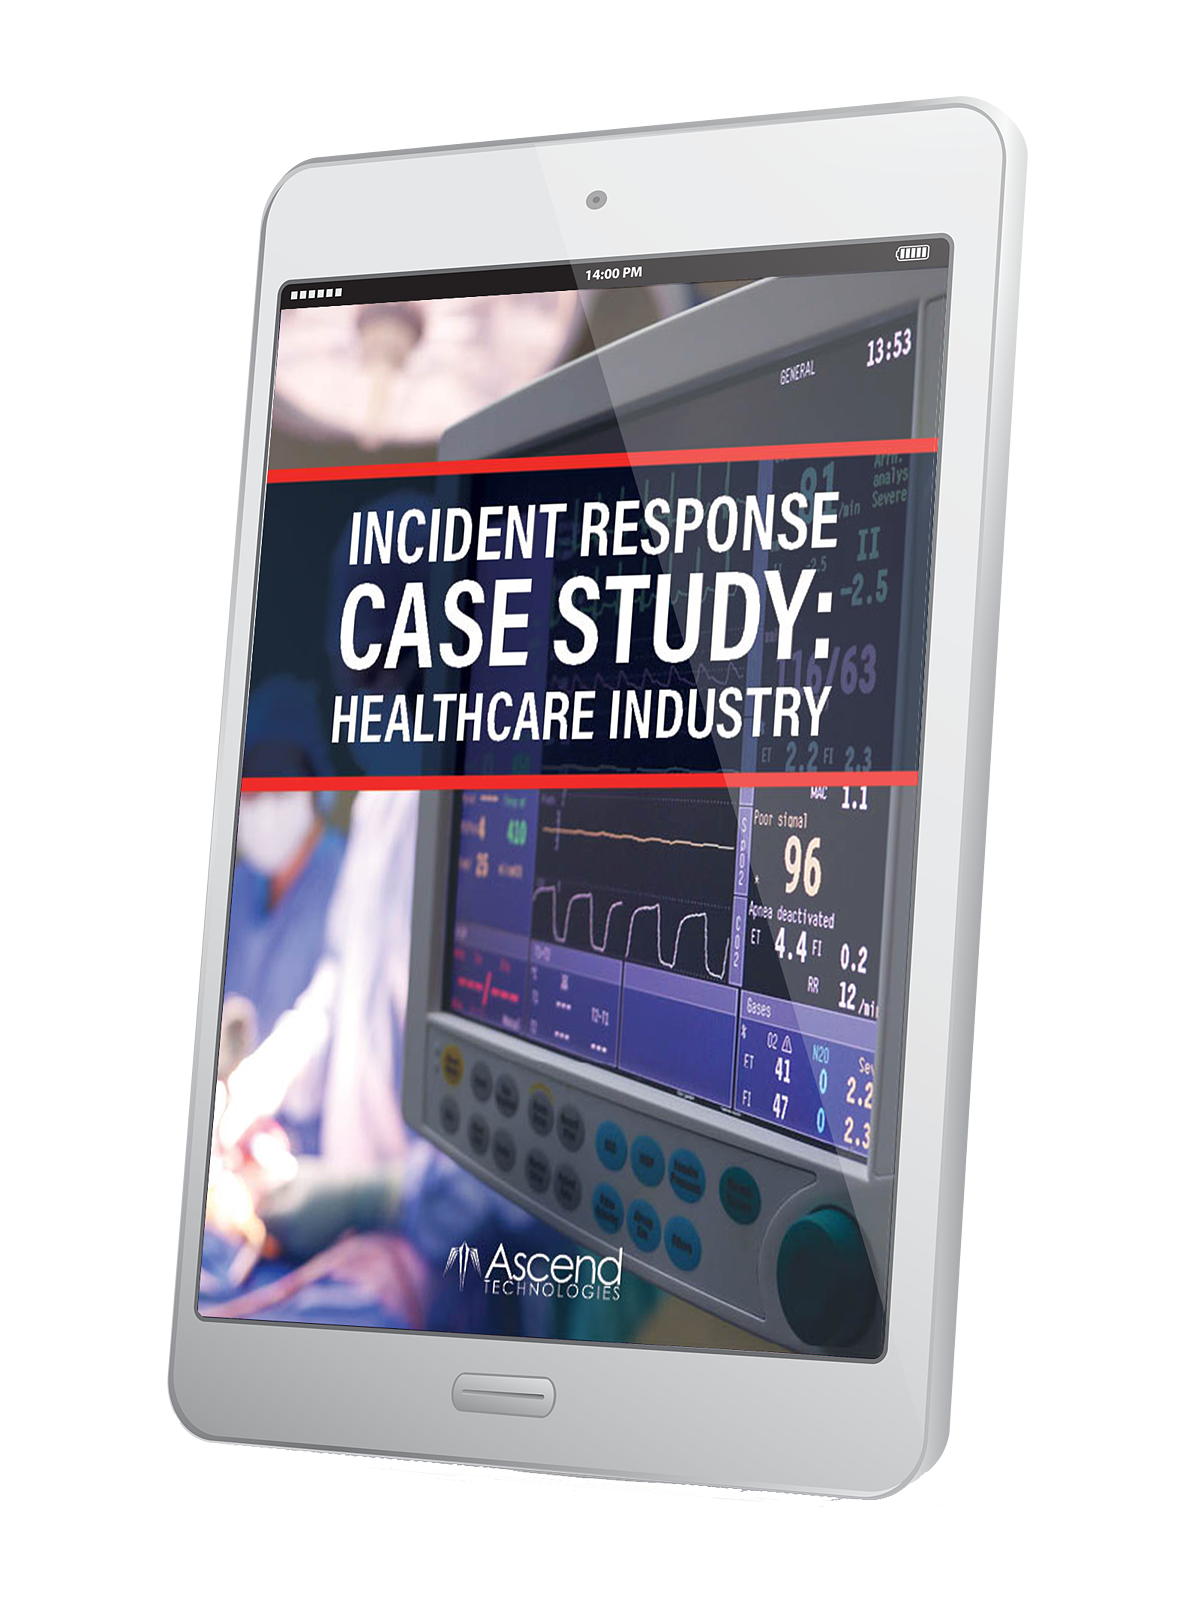 healthcare IR case study on tablet